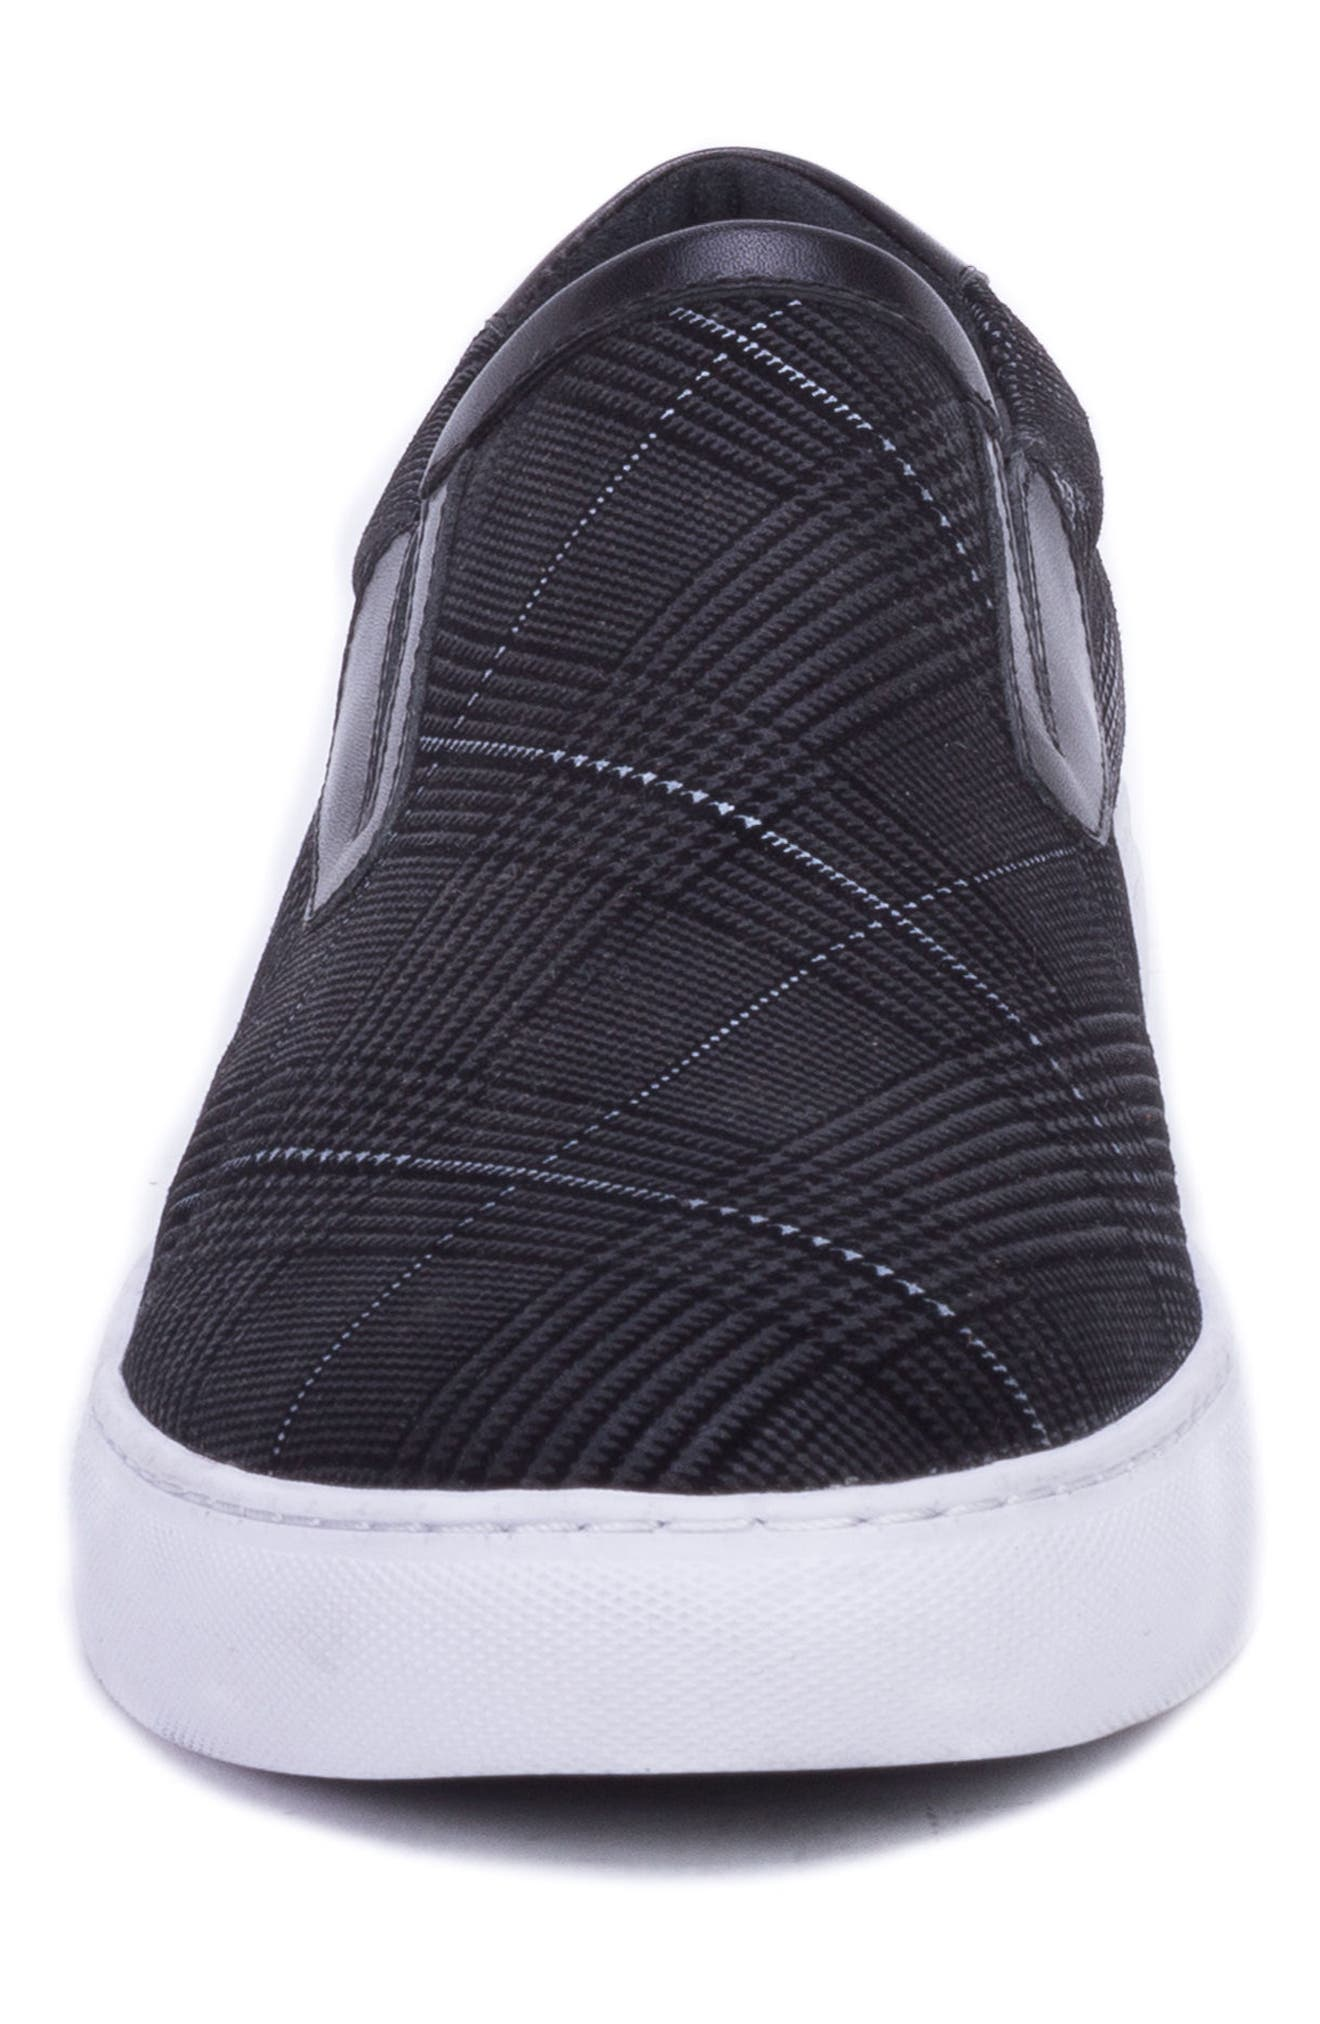 Kerby Slip-On Sneaker,                             Alternate thumbnail 4, color,                             BLACK SUEDE